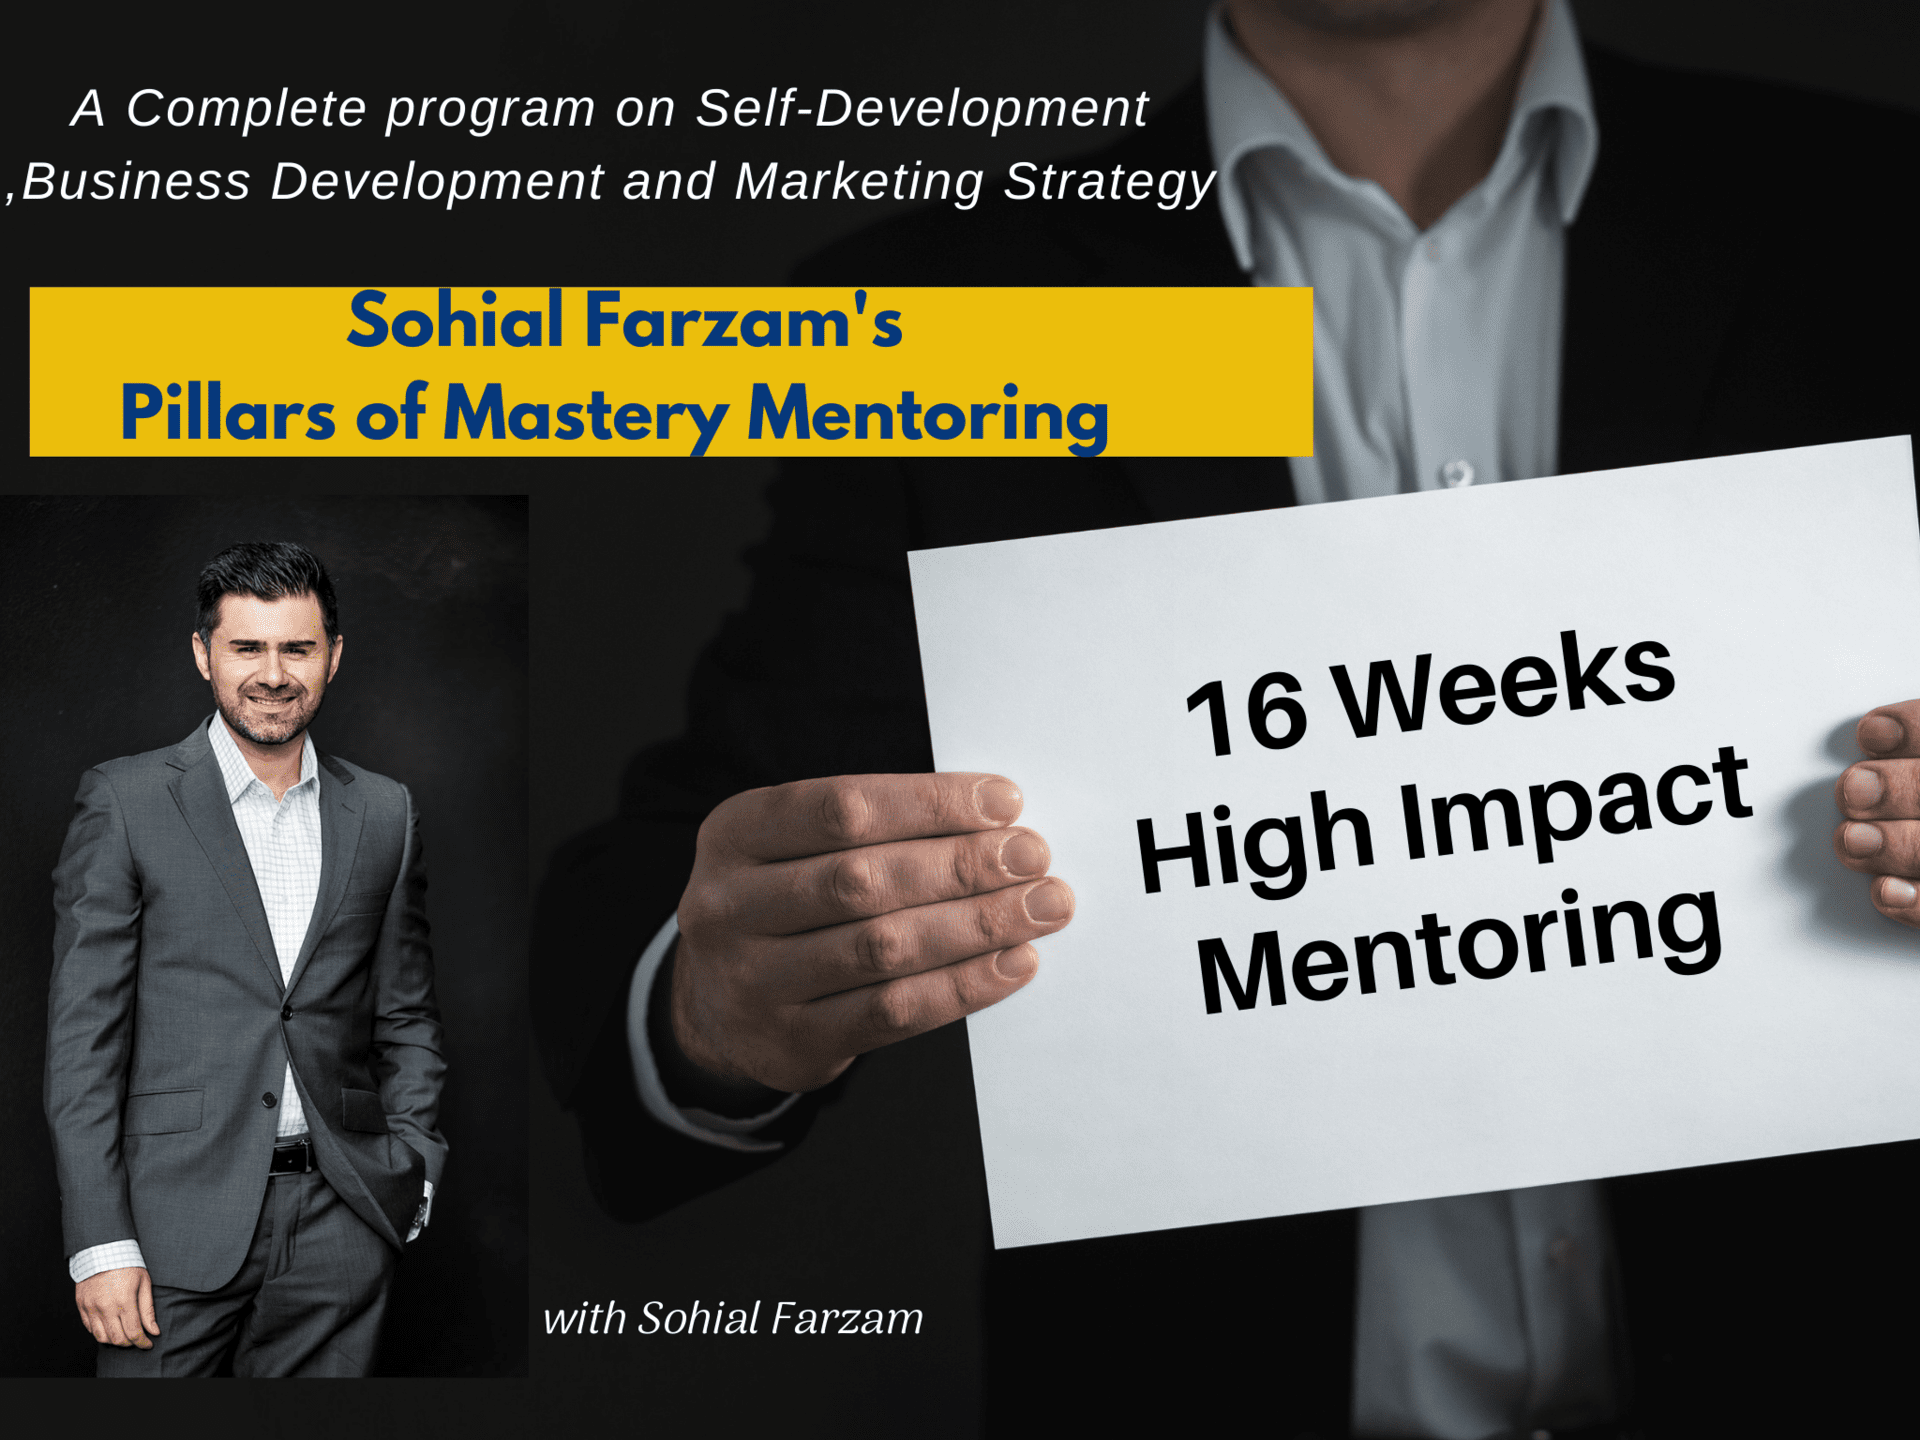 Sohial Farzam - Pillars of Mastery 16 Week Mentoring